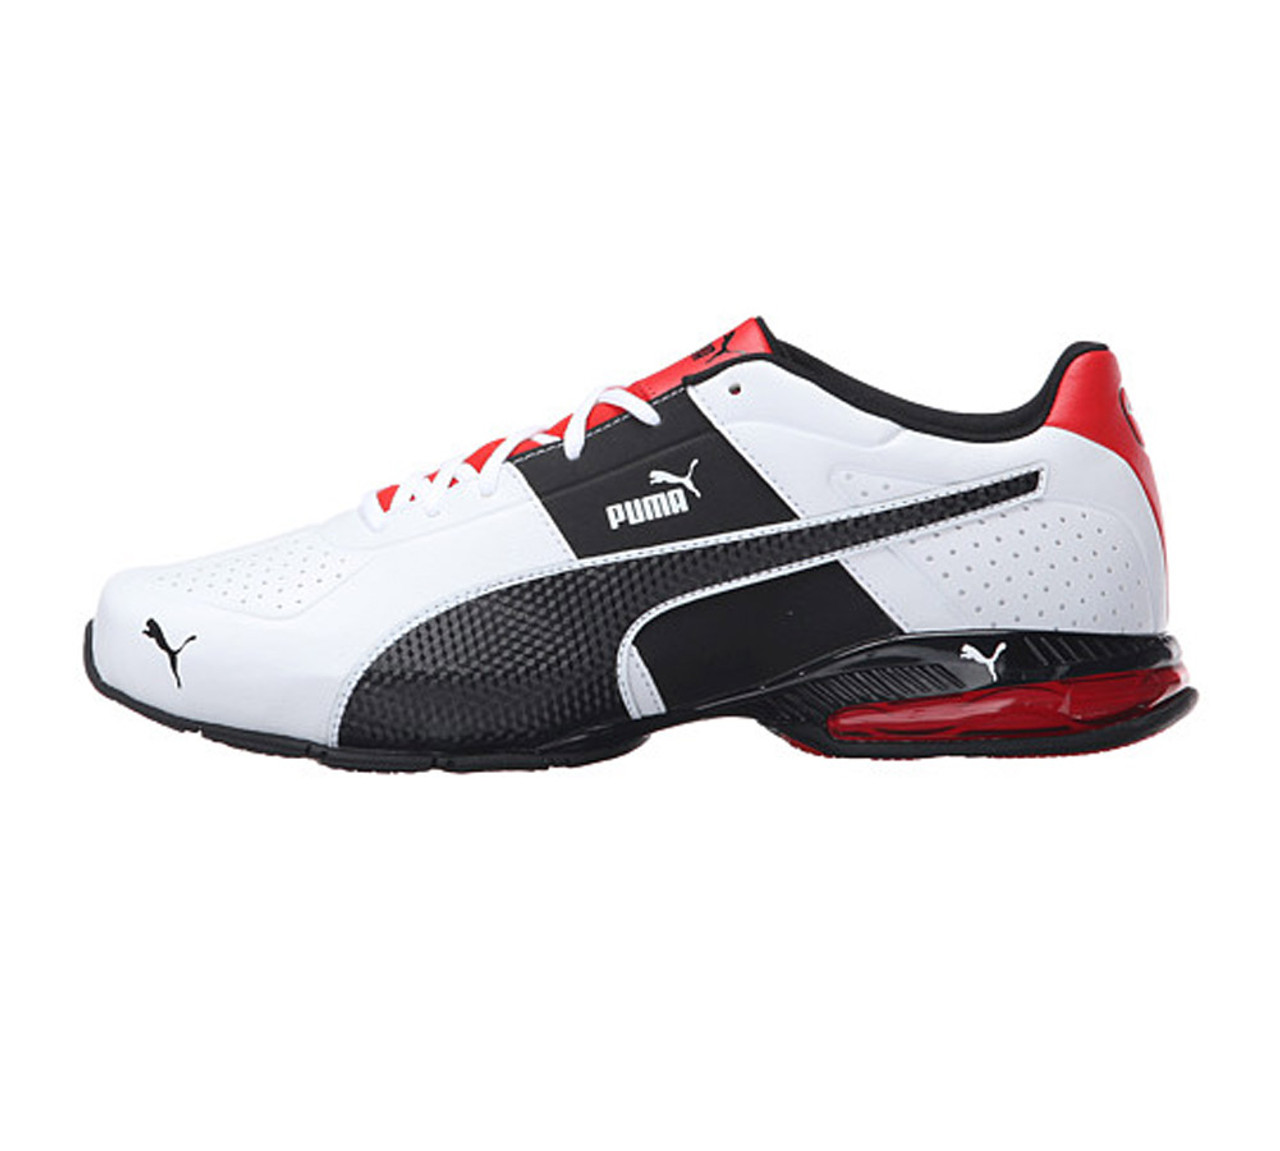 ce9dae0ca5f3c4 Puma Men s Cell Surin 2 FM Sneaker White Black Flame Scarlet - Shop now